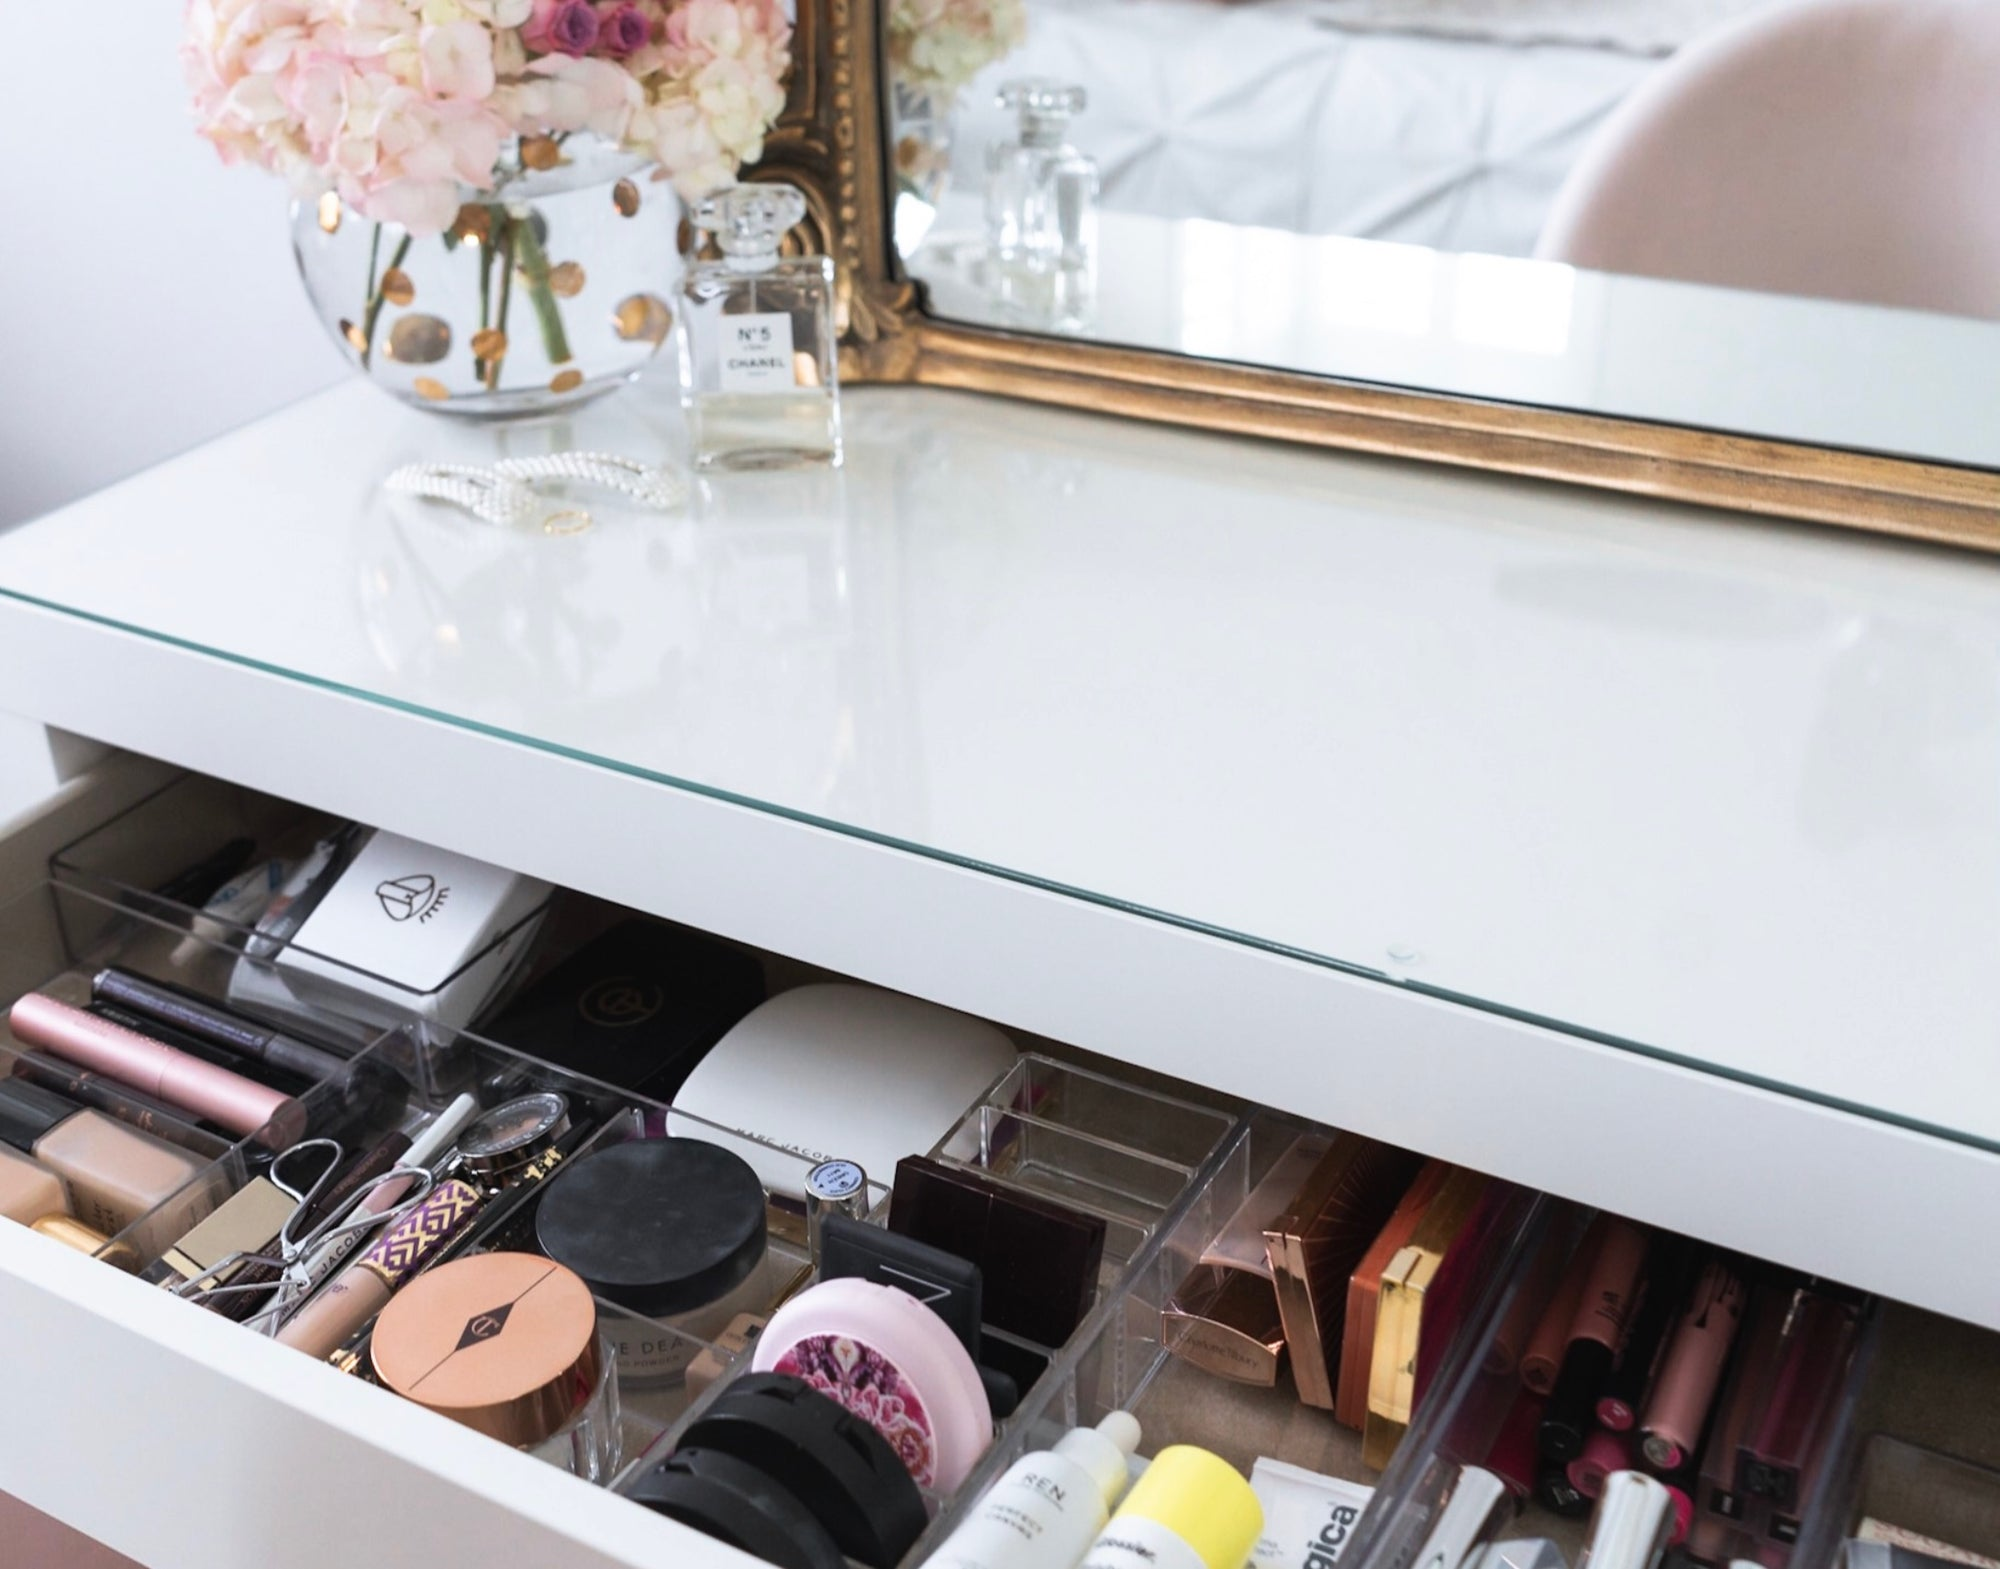 Tidying Up Your Beauty Collection, KonMari Style